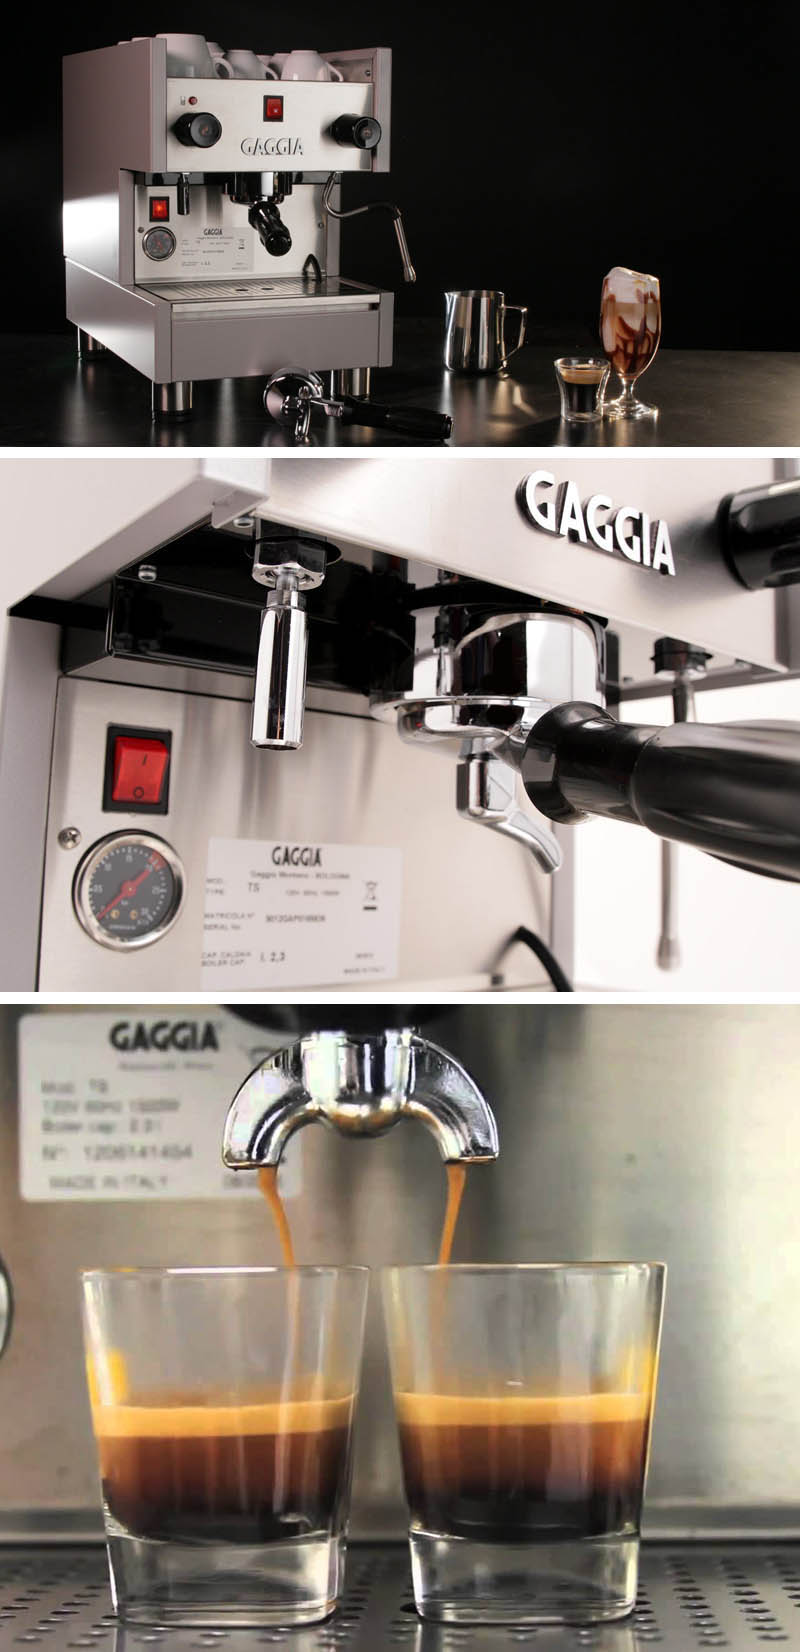 gaggia coffee maker instructions